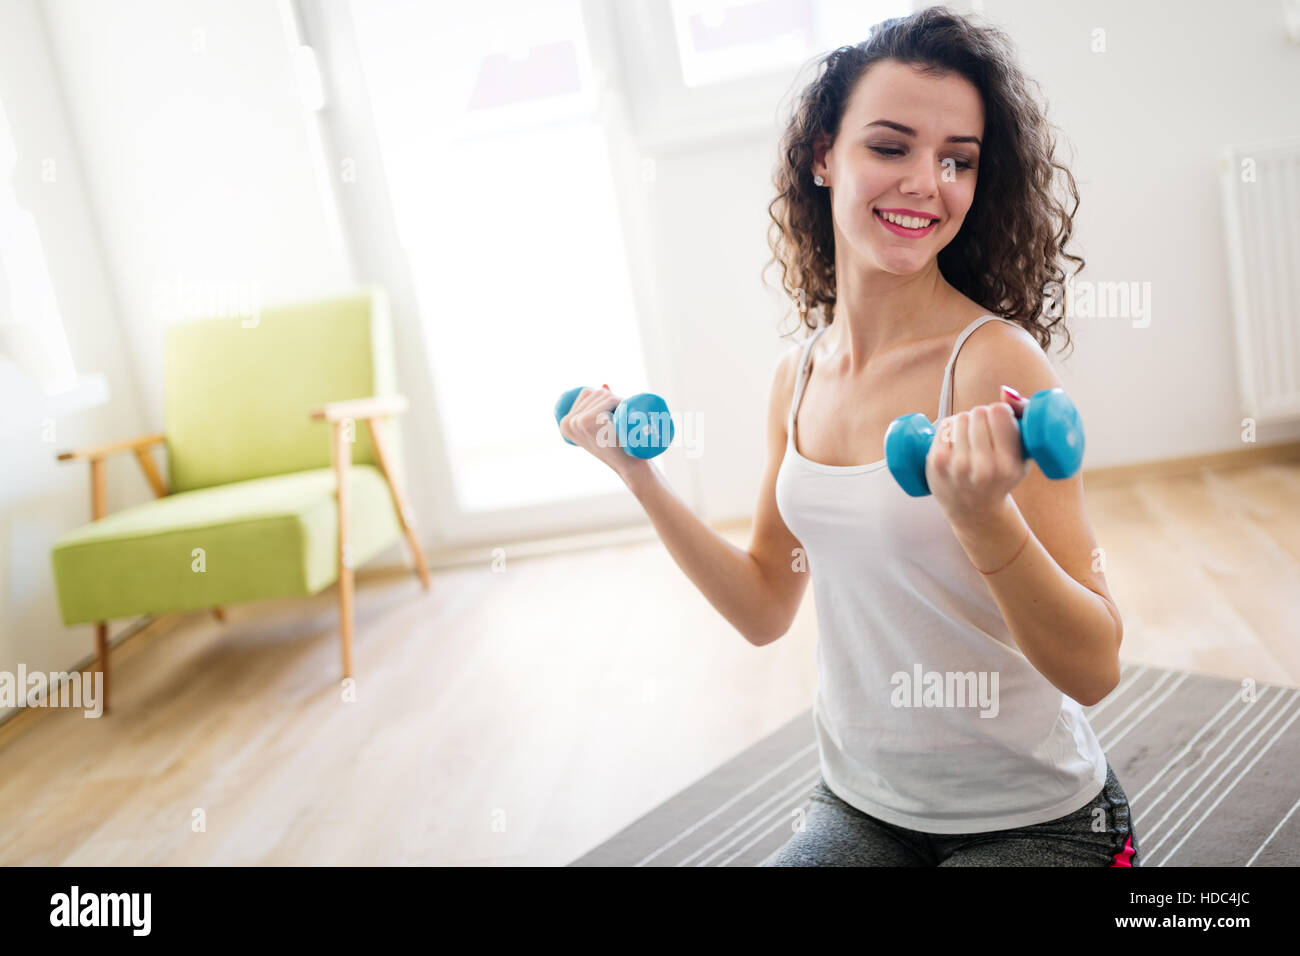 Sporty beautiful woman exercising at home to stay fit - Stock Image